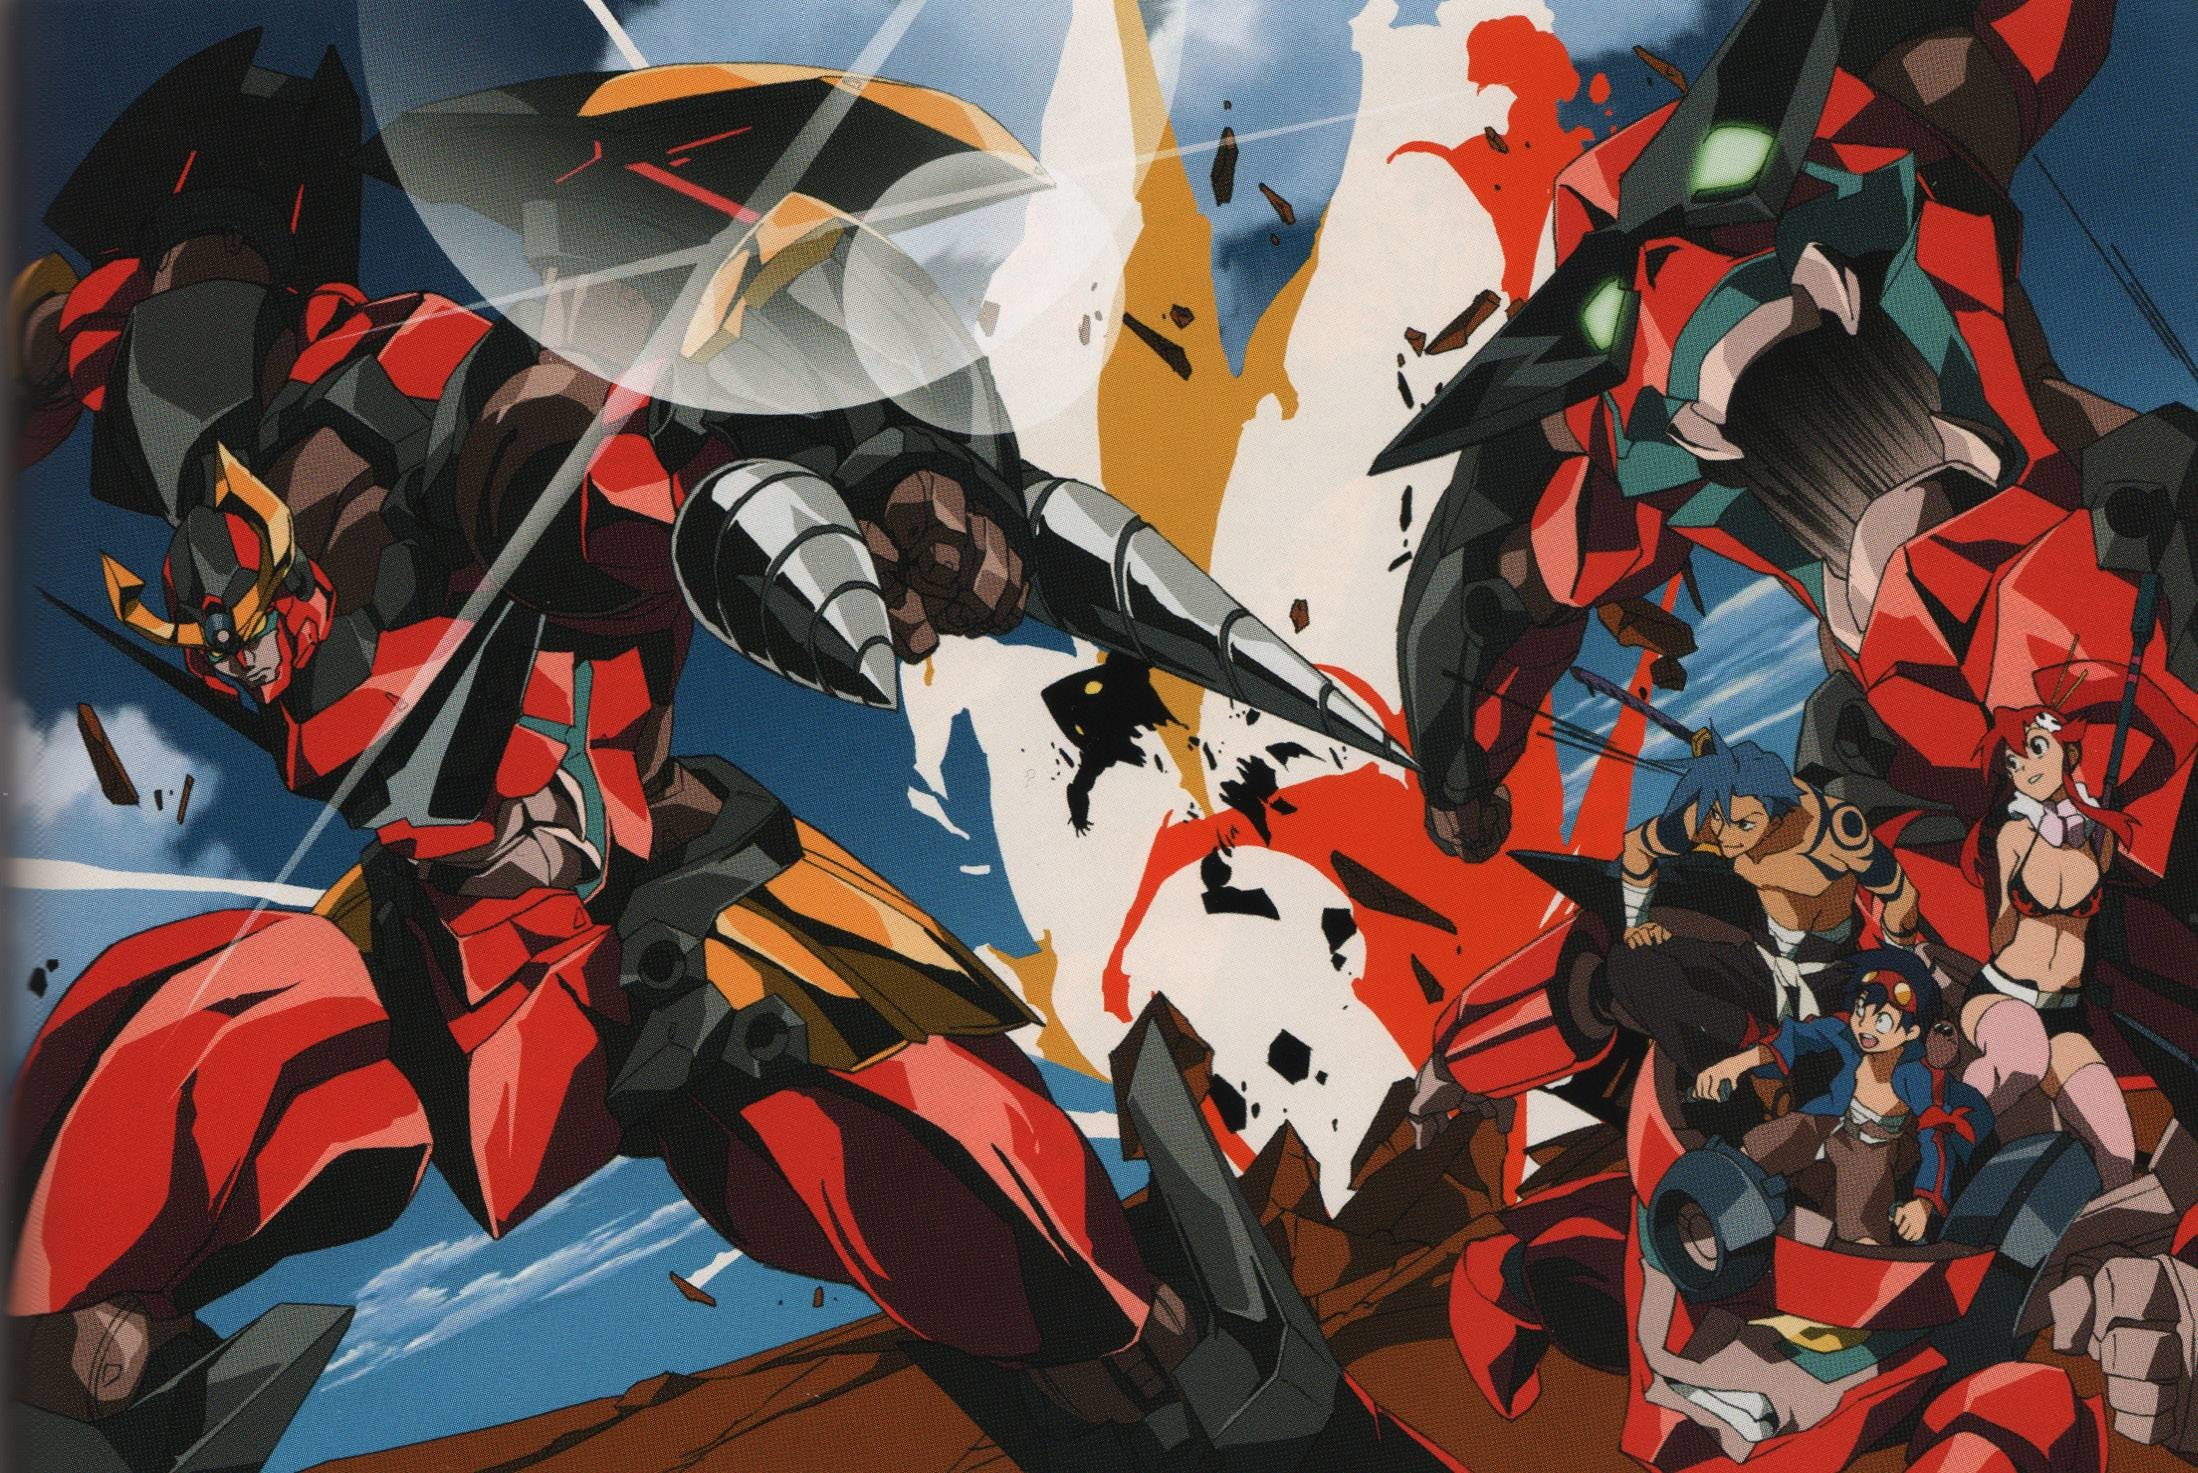 2198x1473 Images For > Gurren Lagann Robot Wallpaper